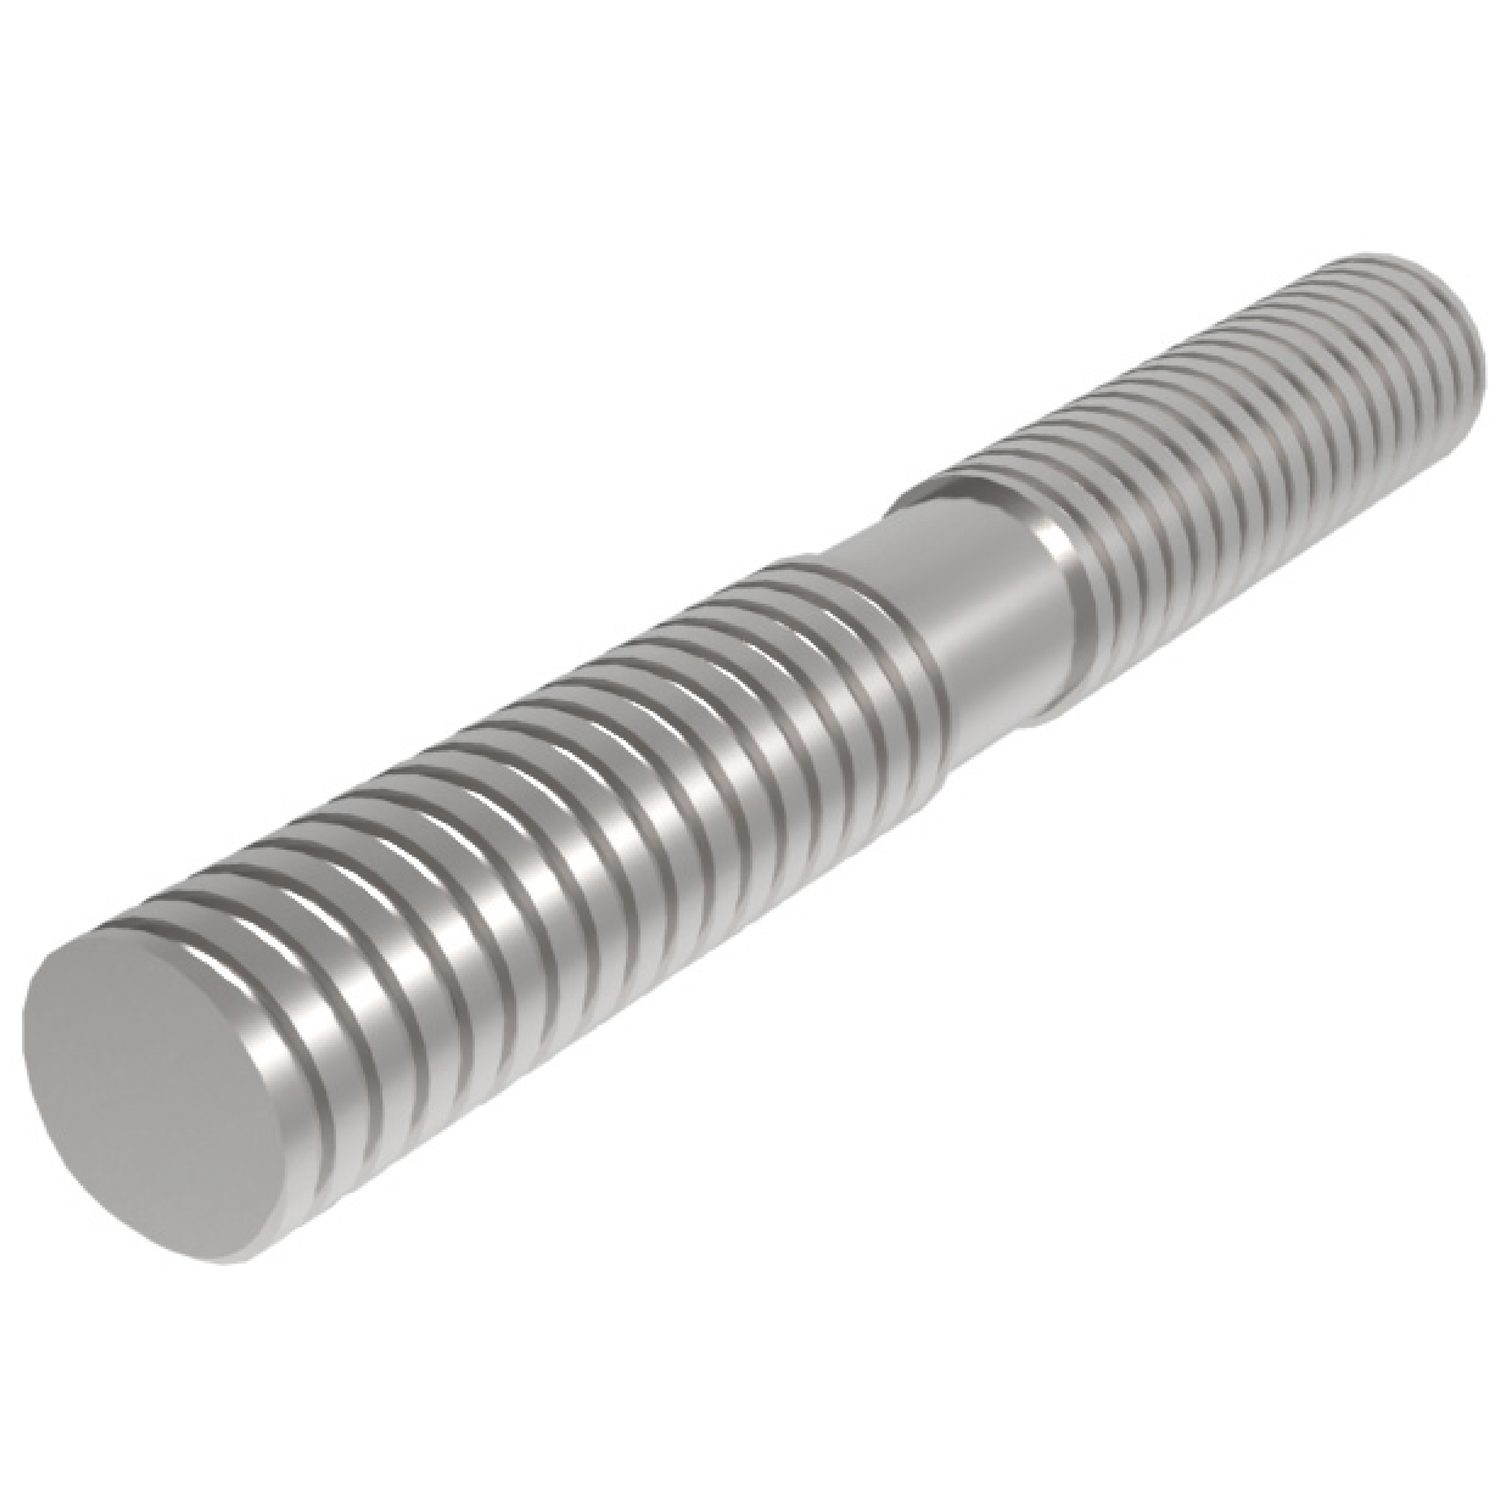 Product L1324, Combined Lead Screws left & right hand /